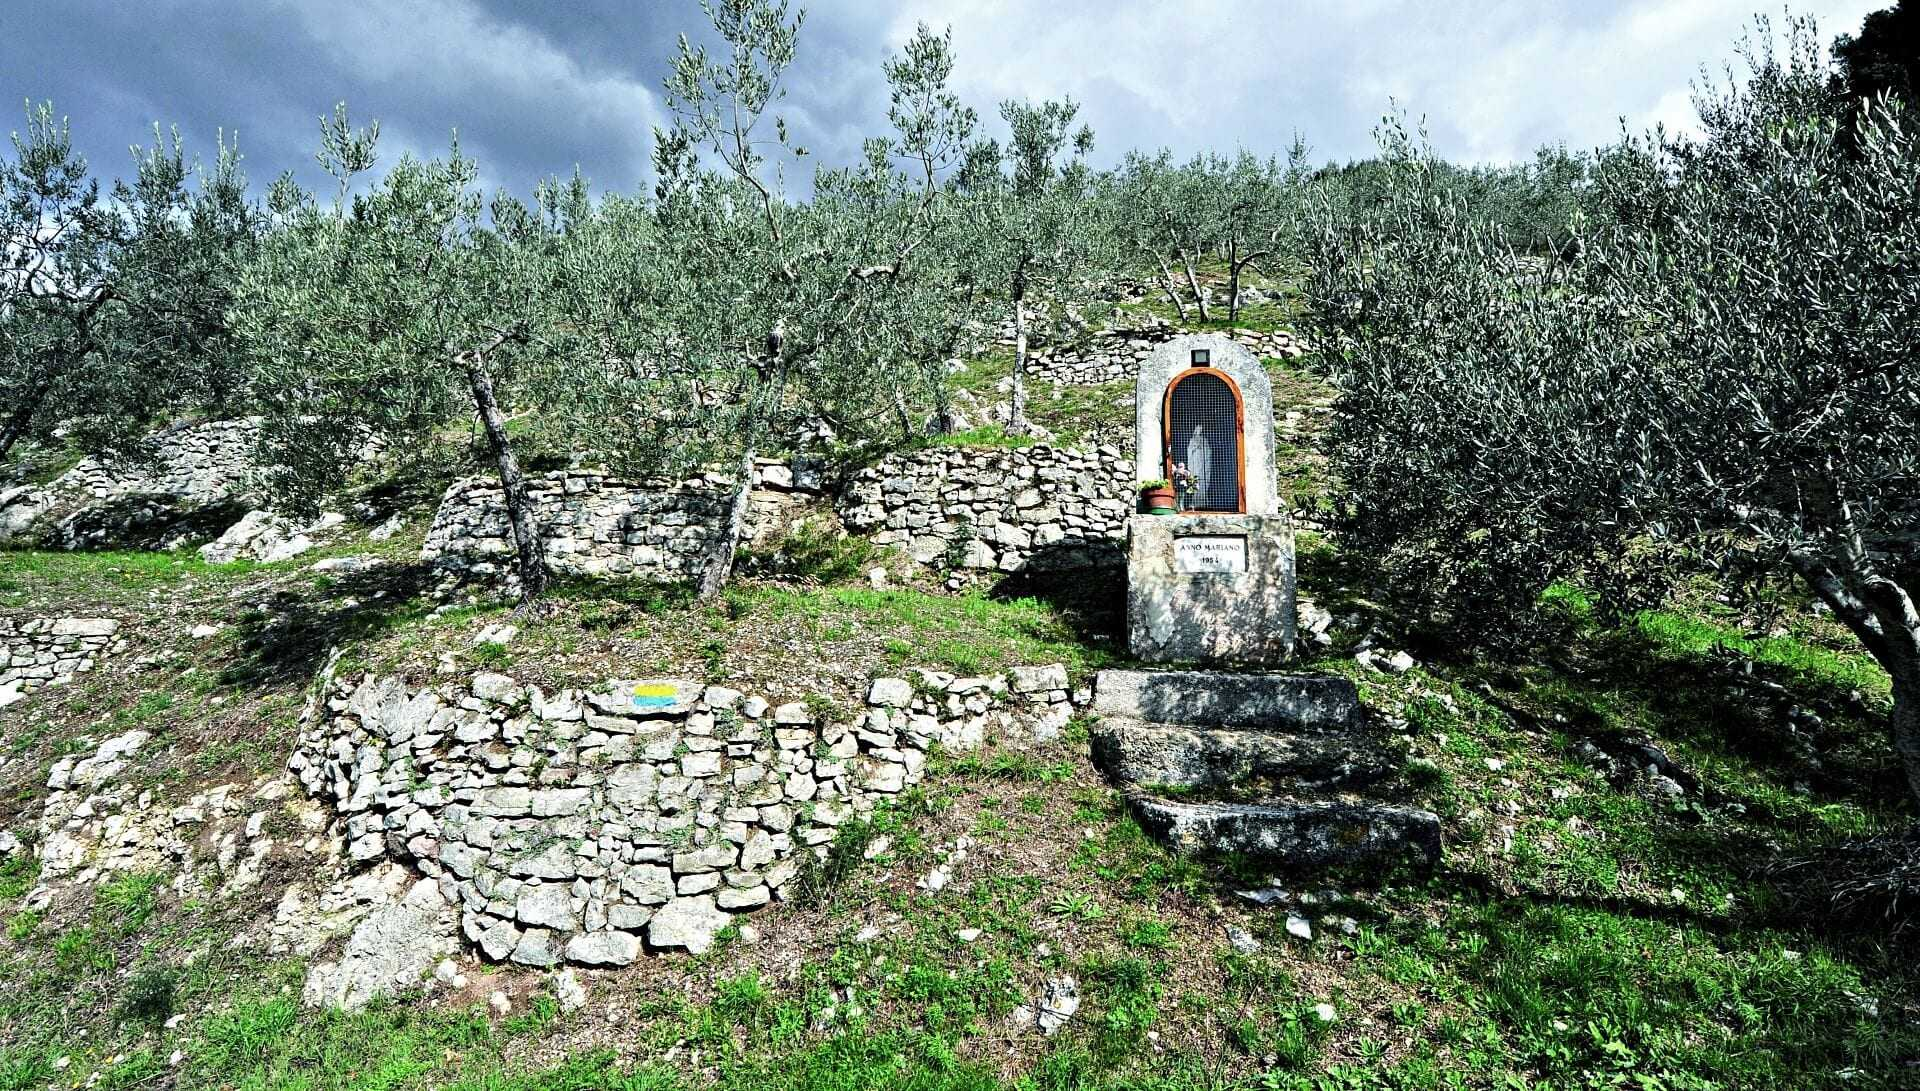 hillside-groves-between-assisi-and-spoleto-get-heritage-status